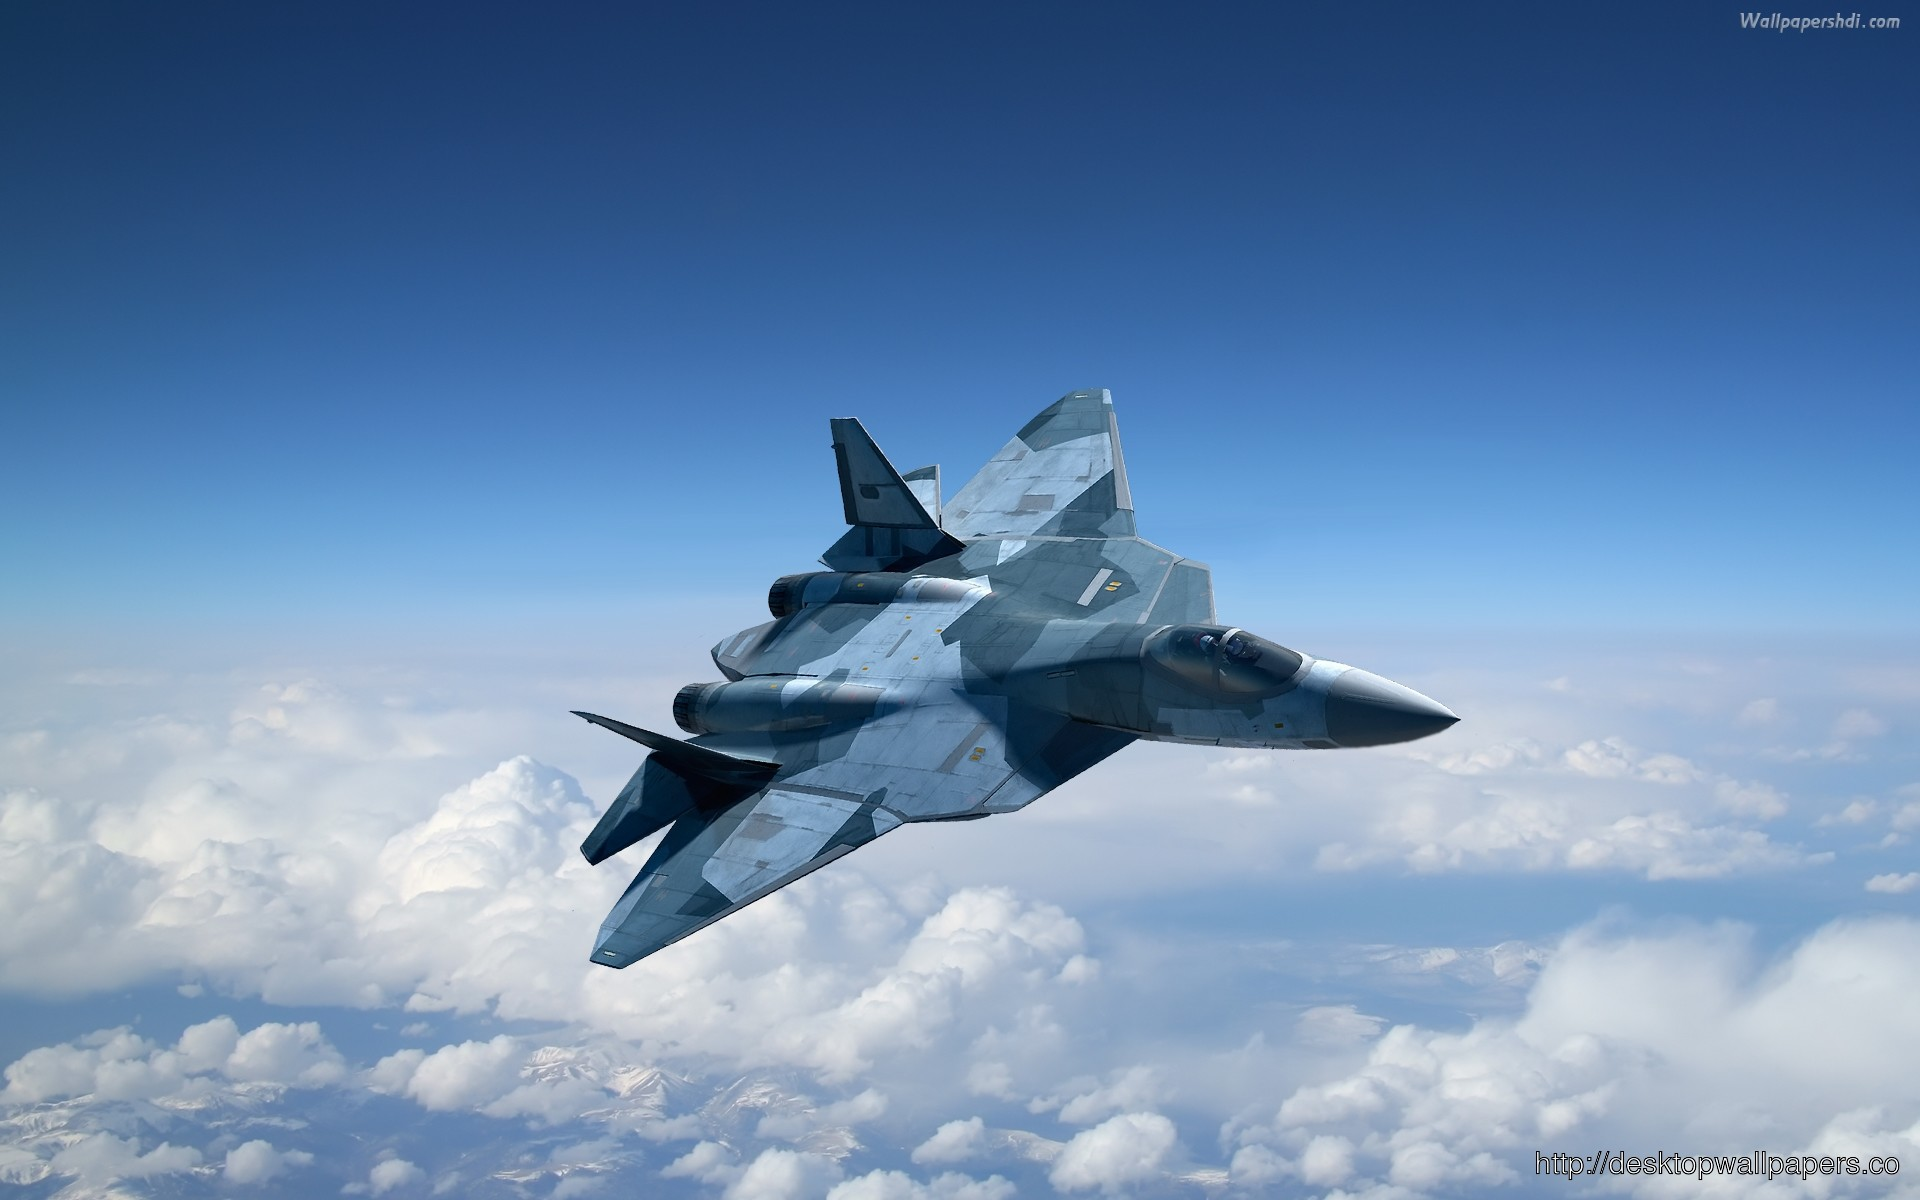 Stealth Fighter Wallpaper Wallpapertag Images, Photos, Reviews